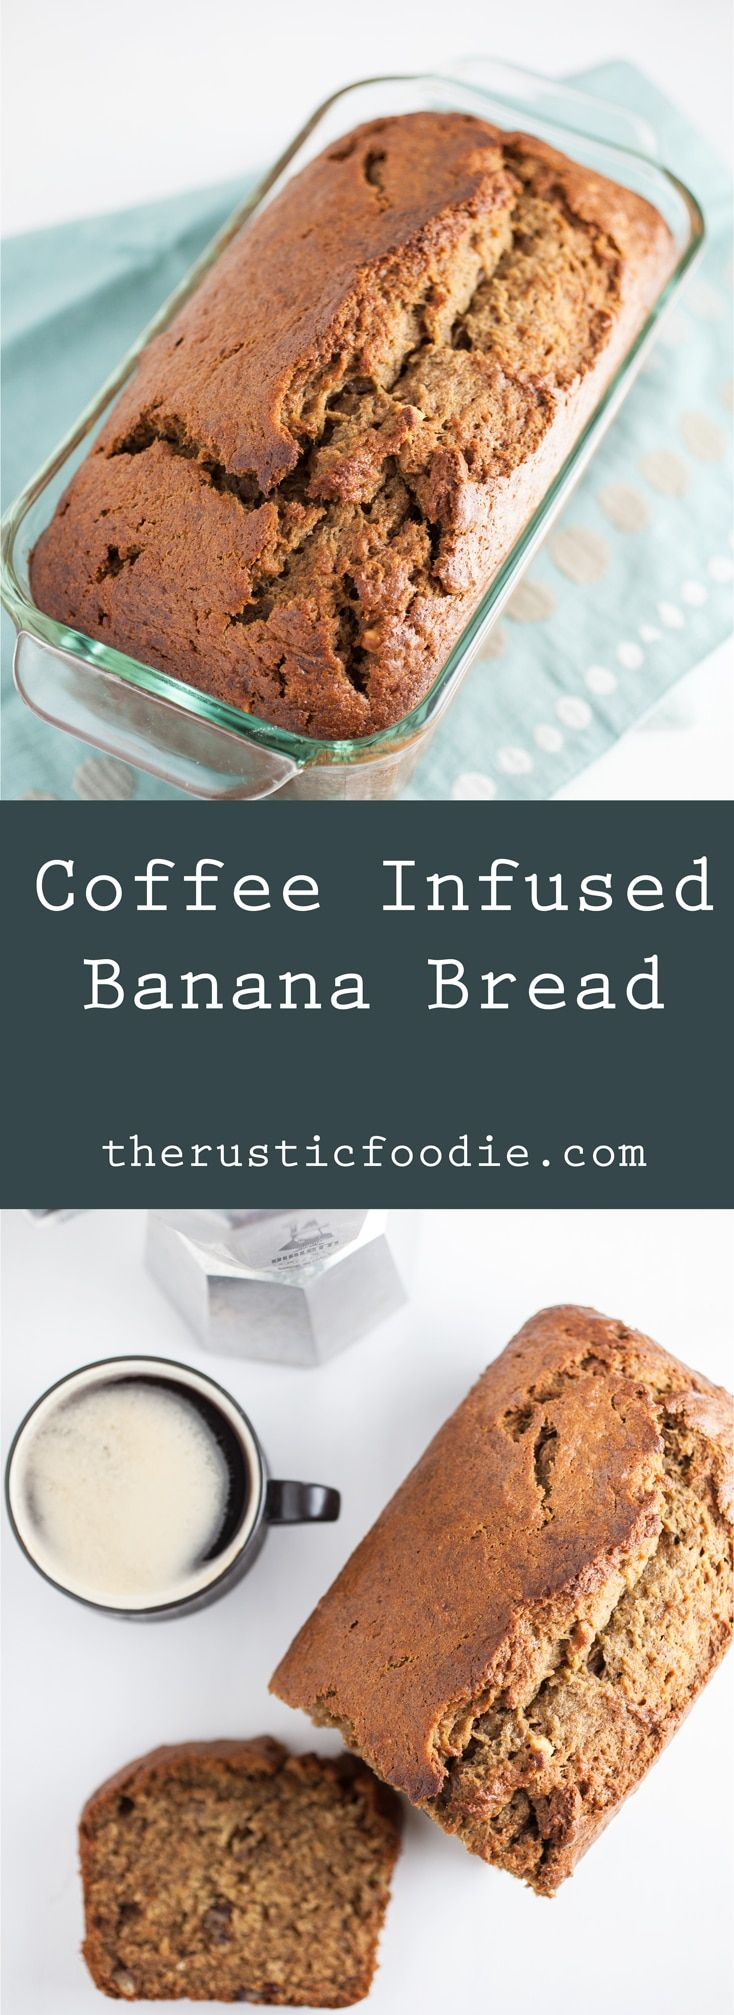 Happy Banana Bread Day! Coffee Infused Banana Bread - A moist banana bread recipe accented with the flavors of coffee, cinnamon, and walnuts. Perfect for breakfast or an after dinner treat!